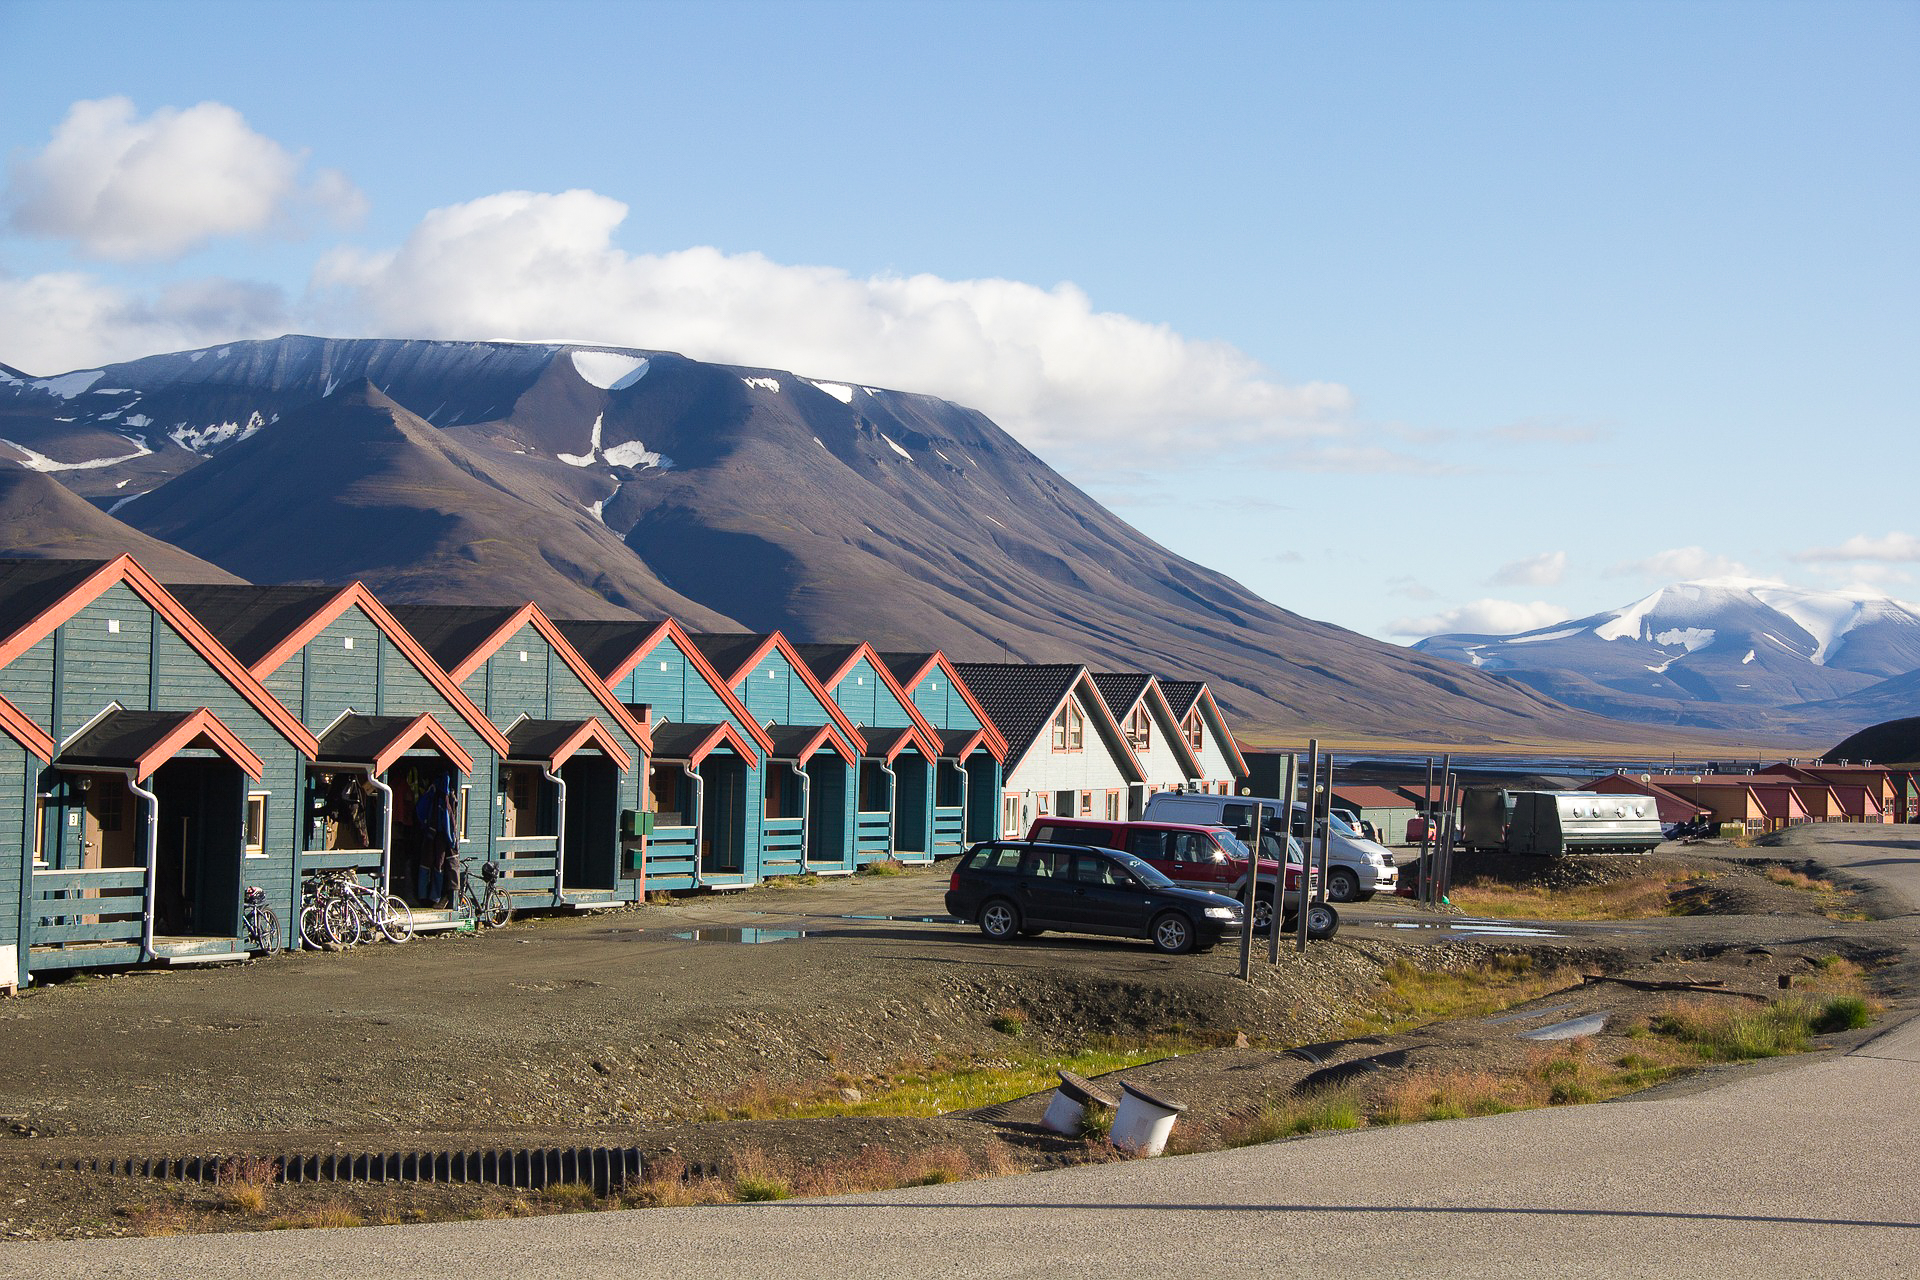 Svalbard Archipelago between Norway and the North Pole